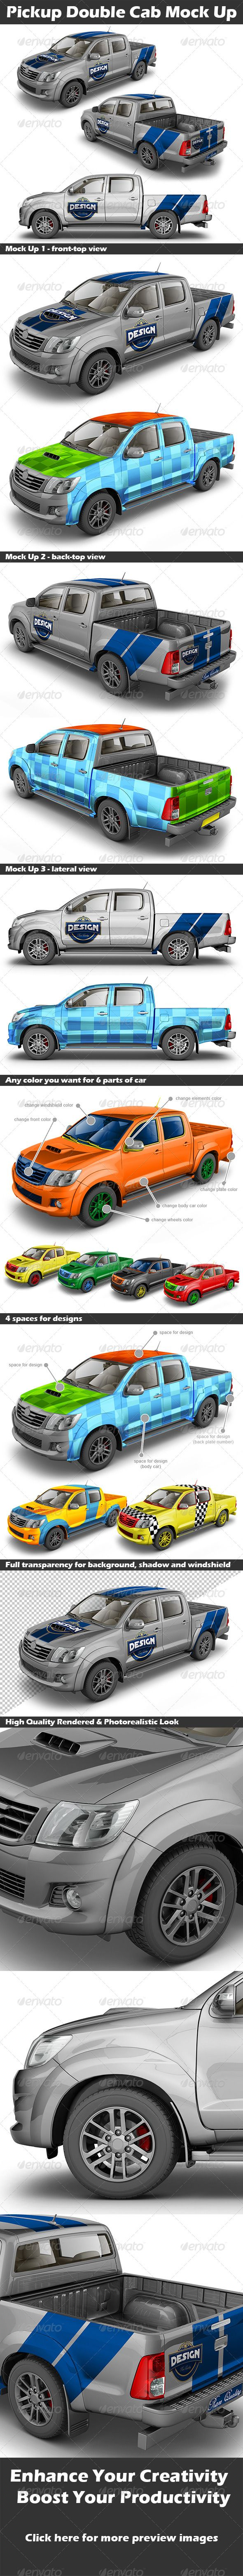 Car sticker photoshop tutorial - Pickup Double Cab Mock Up Photoshop Psd Bakkie Cab Available Here